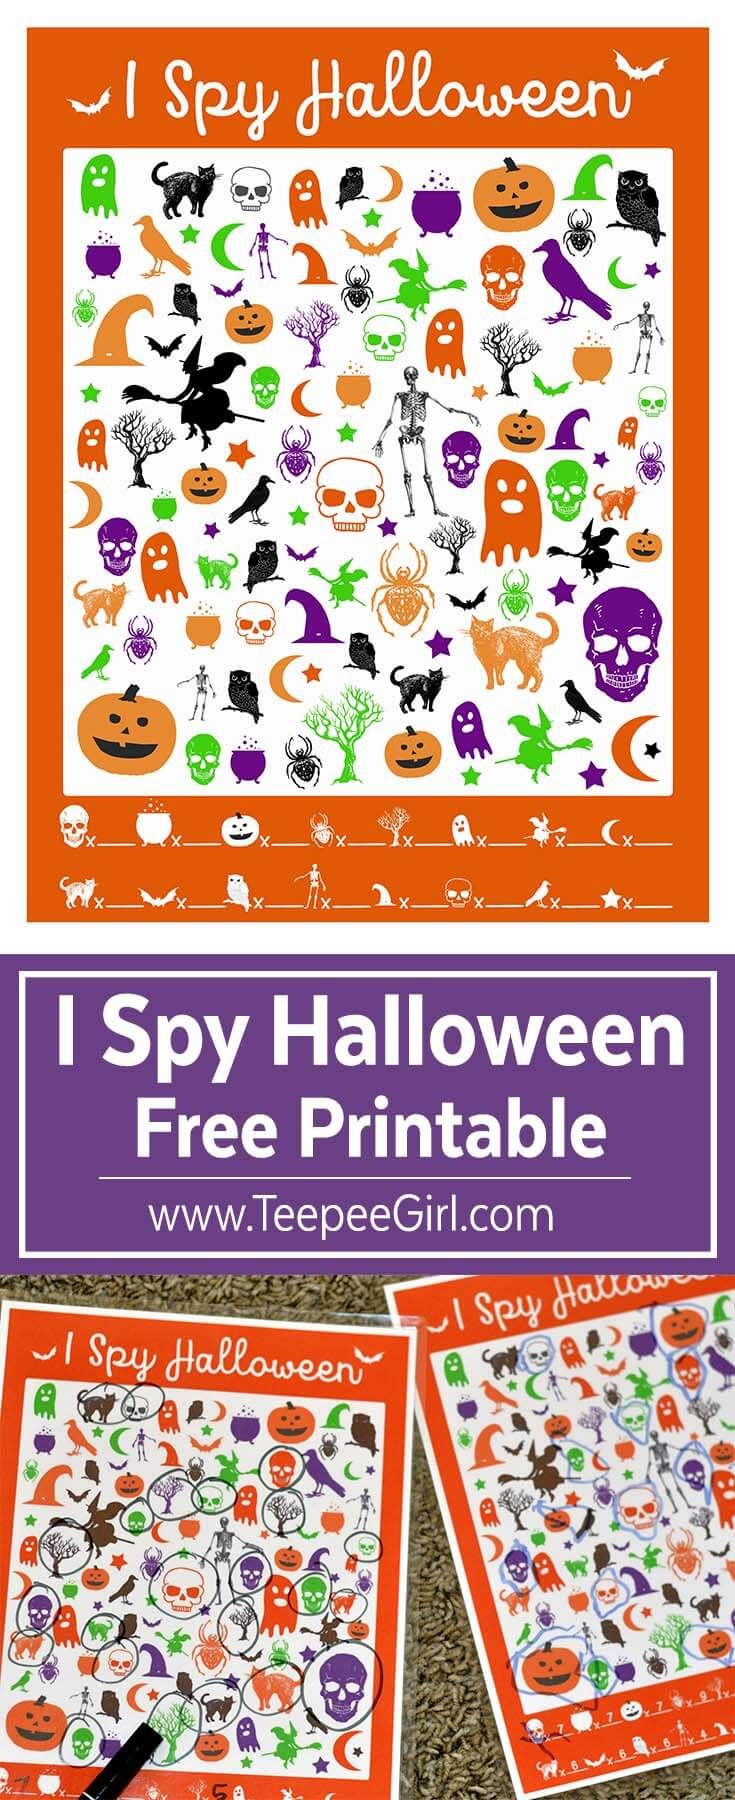 It's just an image of Ambitious Halloween Printable Games